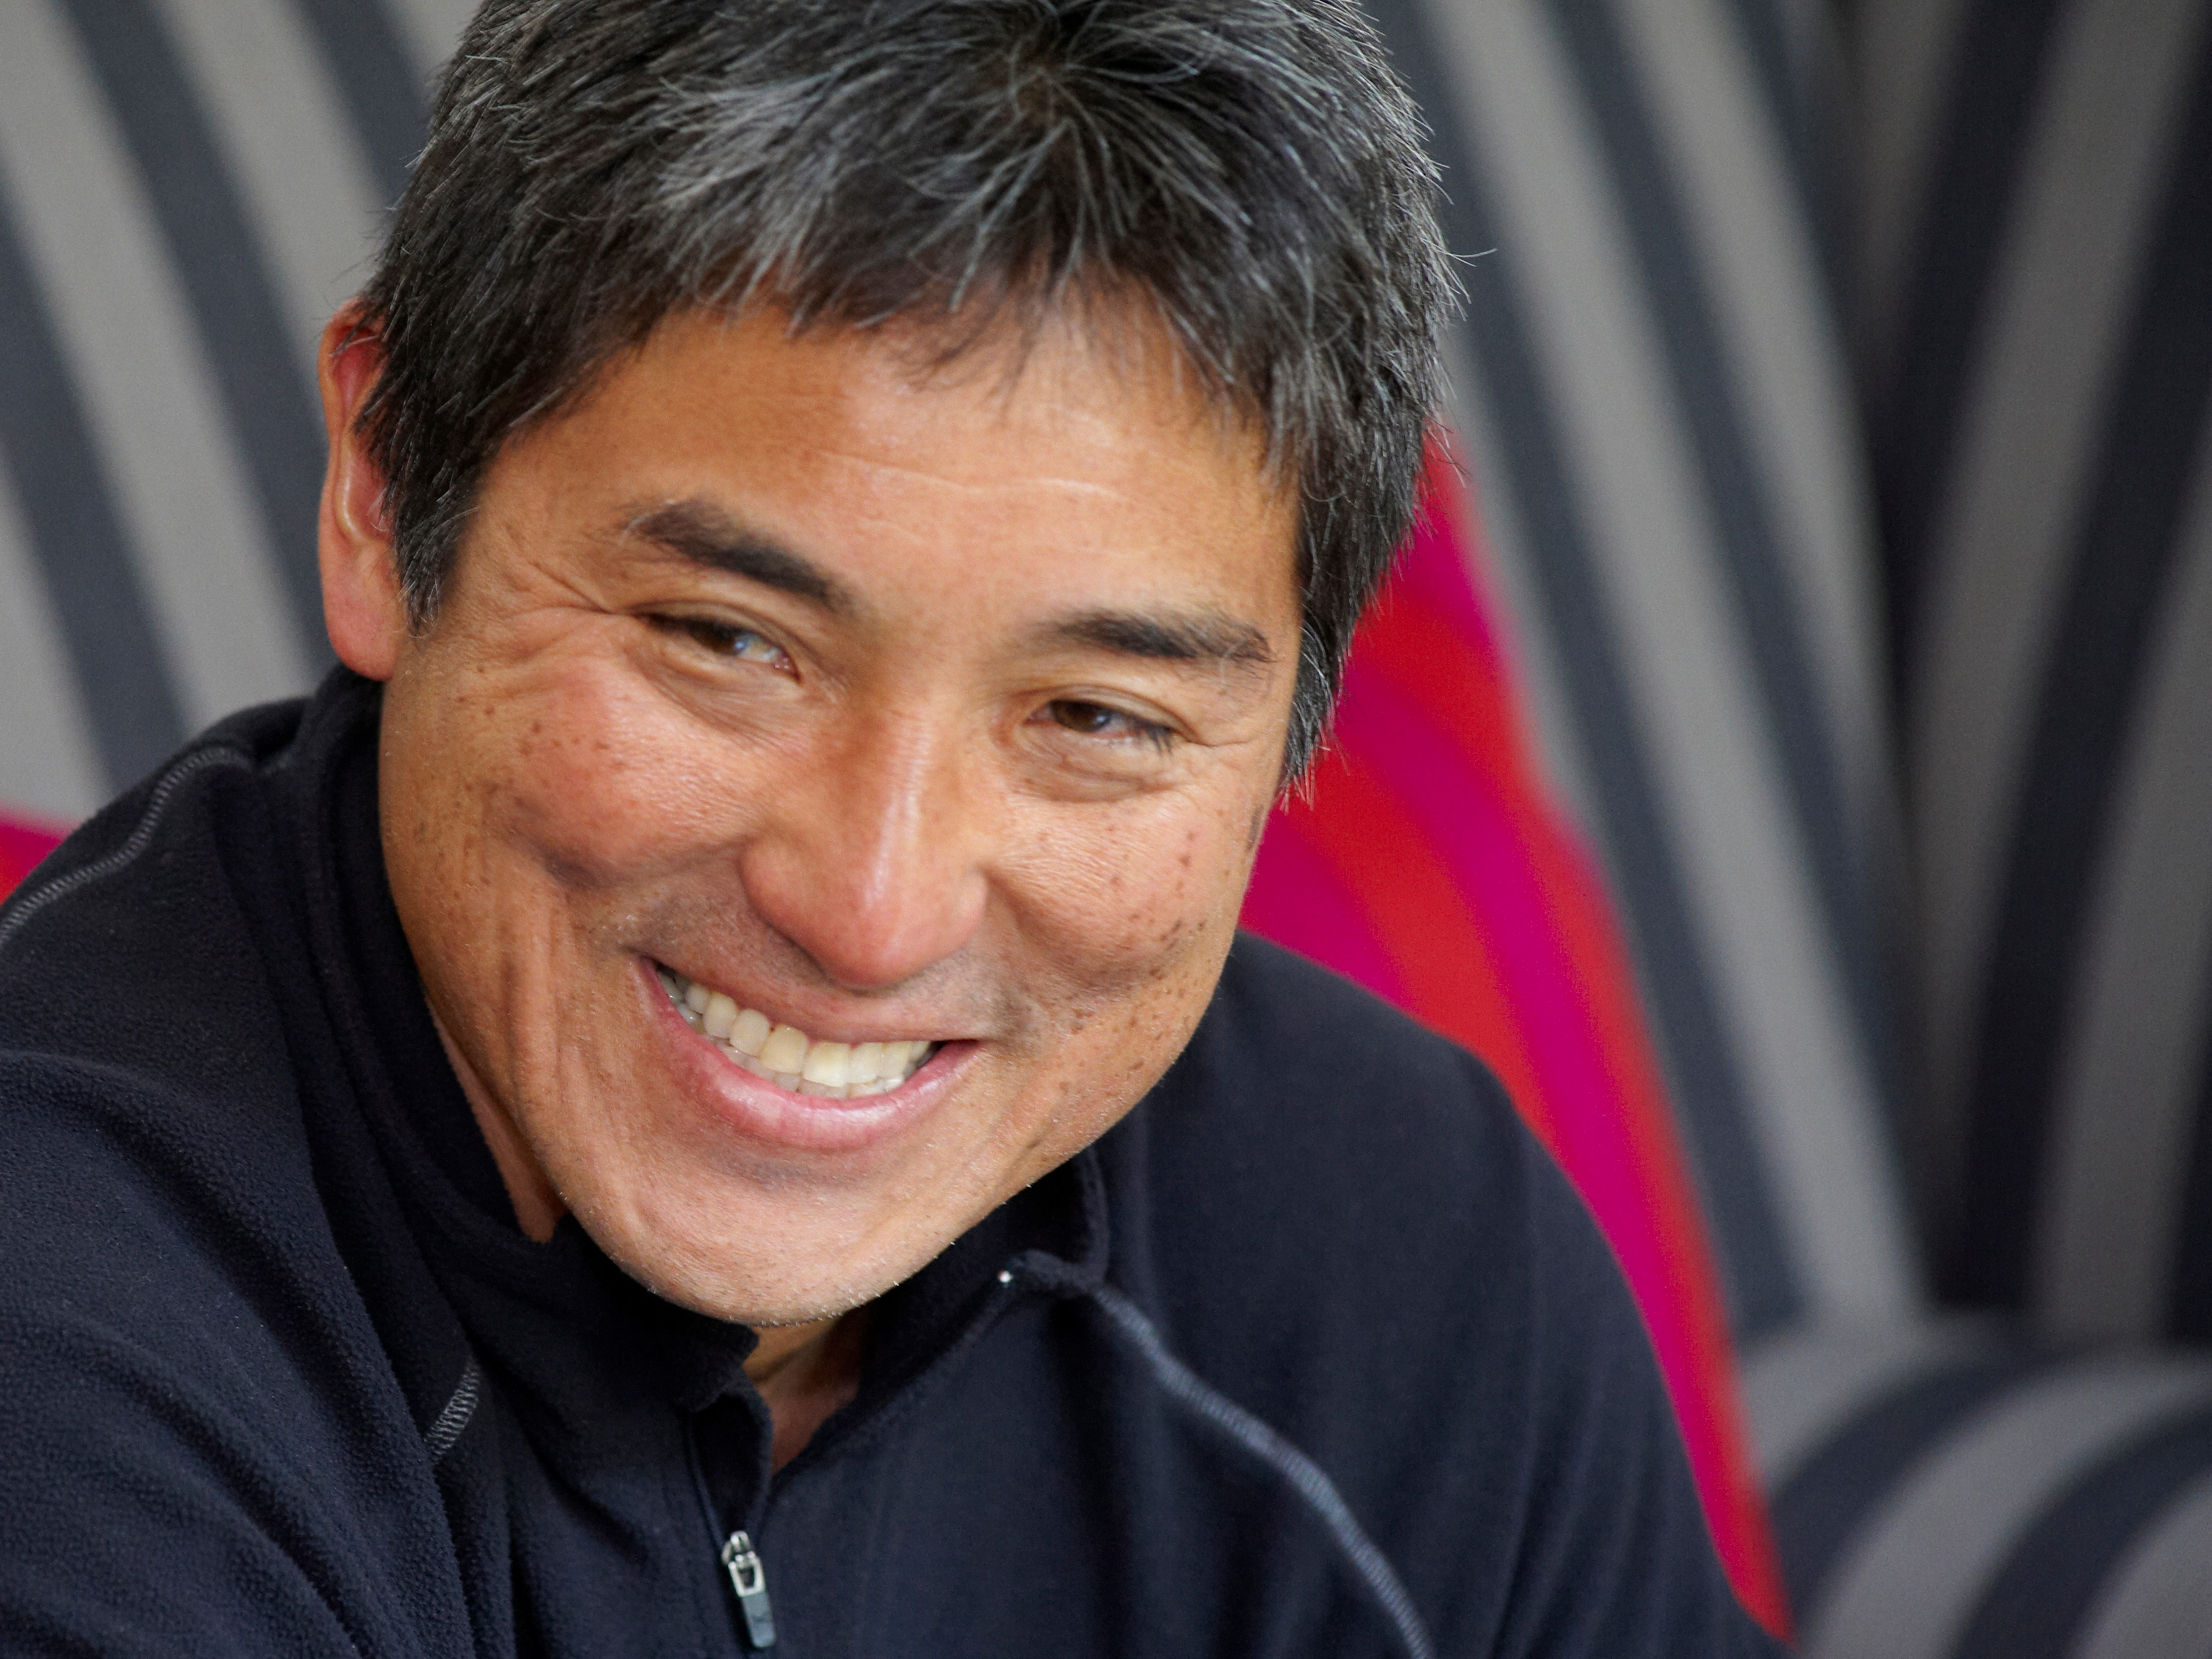 The 63-year old son of father (?) and mother(?), 153 cm tall Guy Kawasaki in 2018 photo